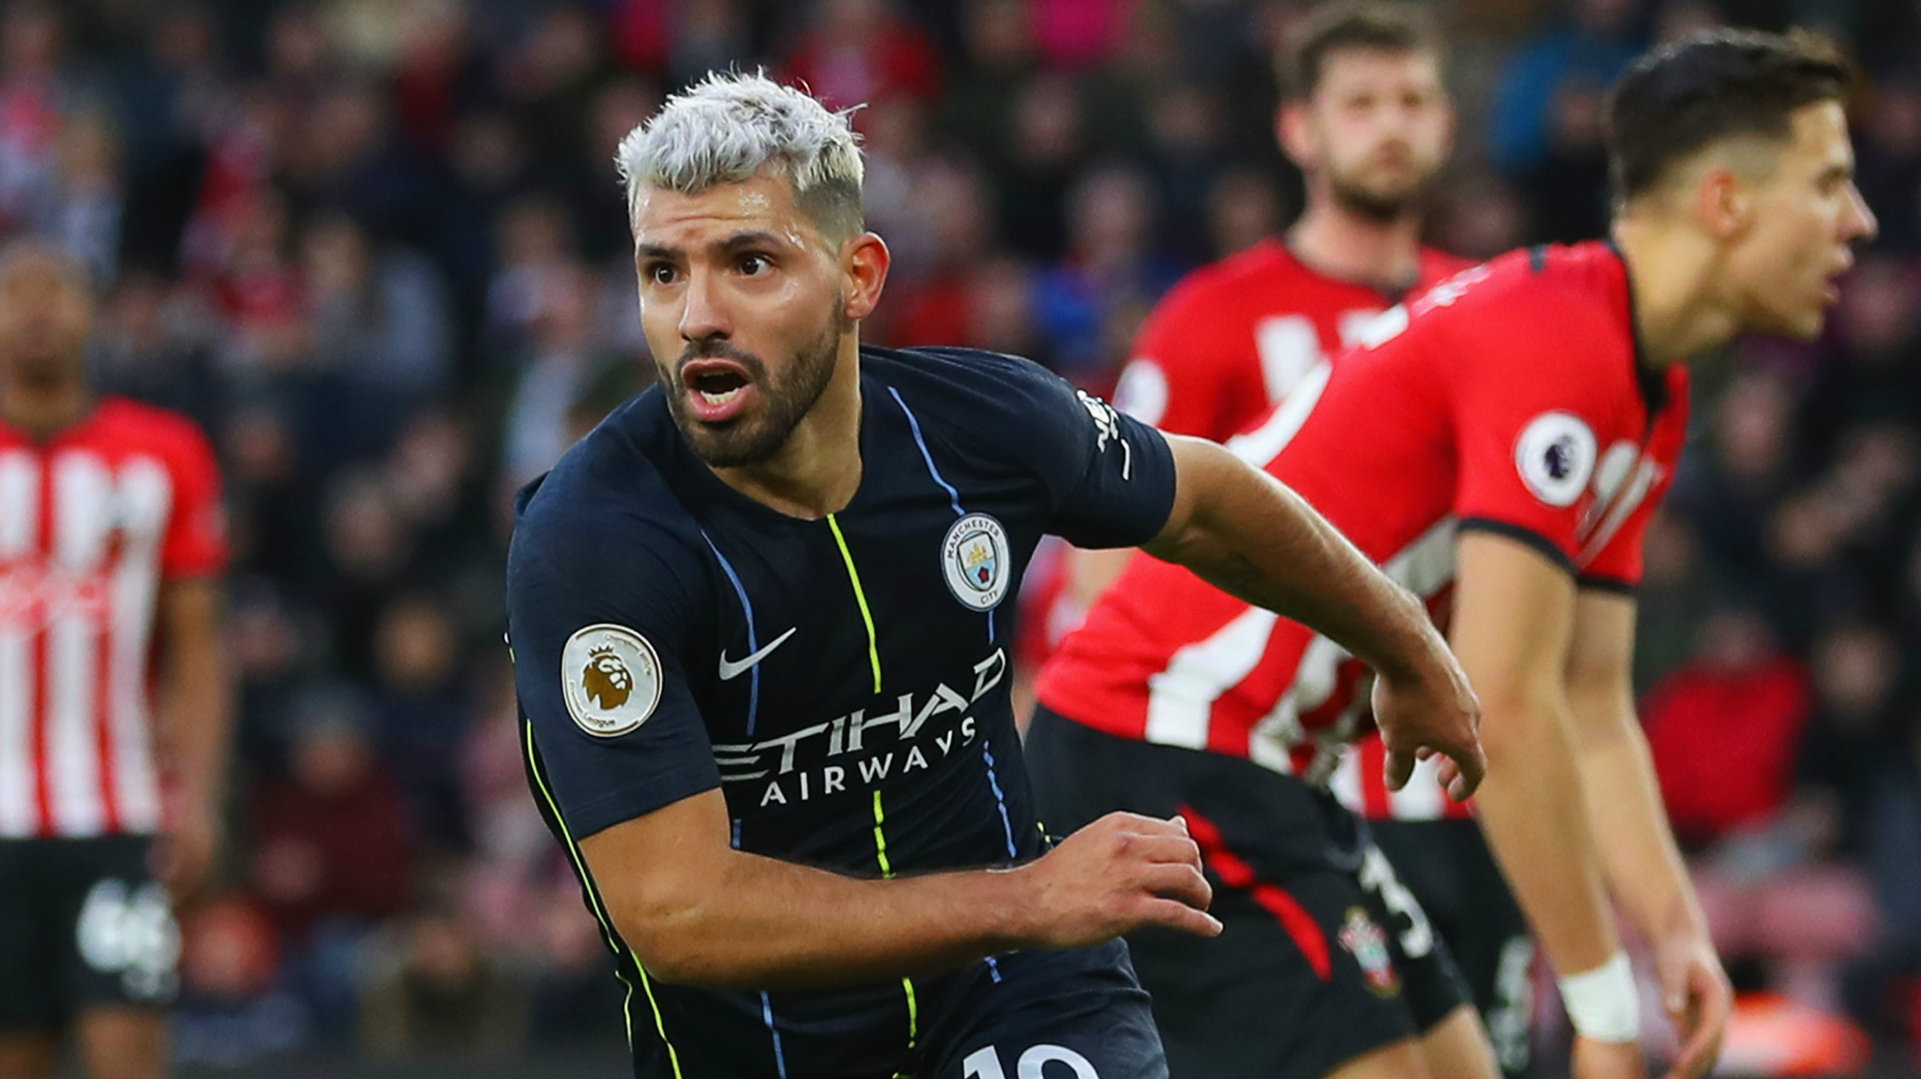 City are title favourites even if they lose 5-0: Collymore